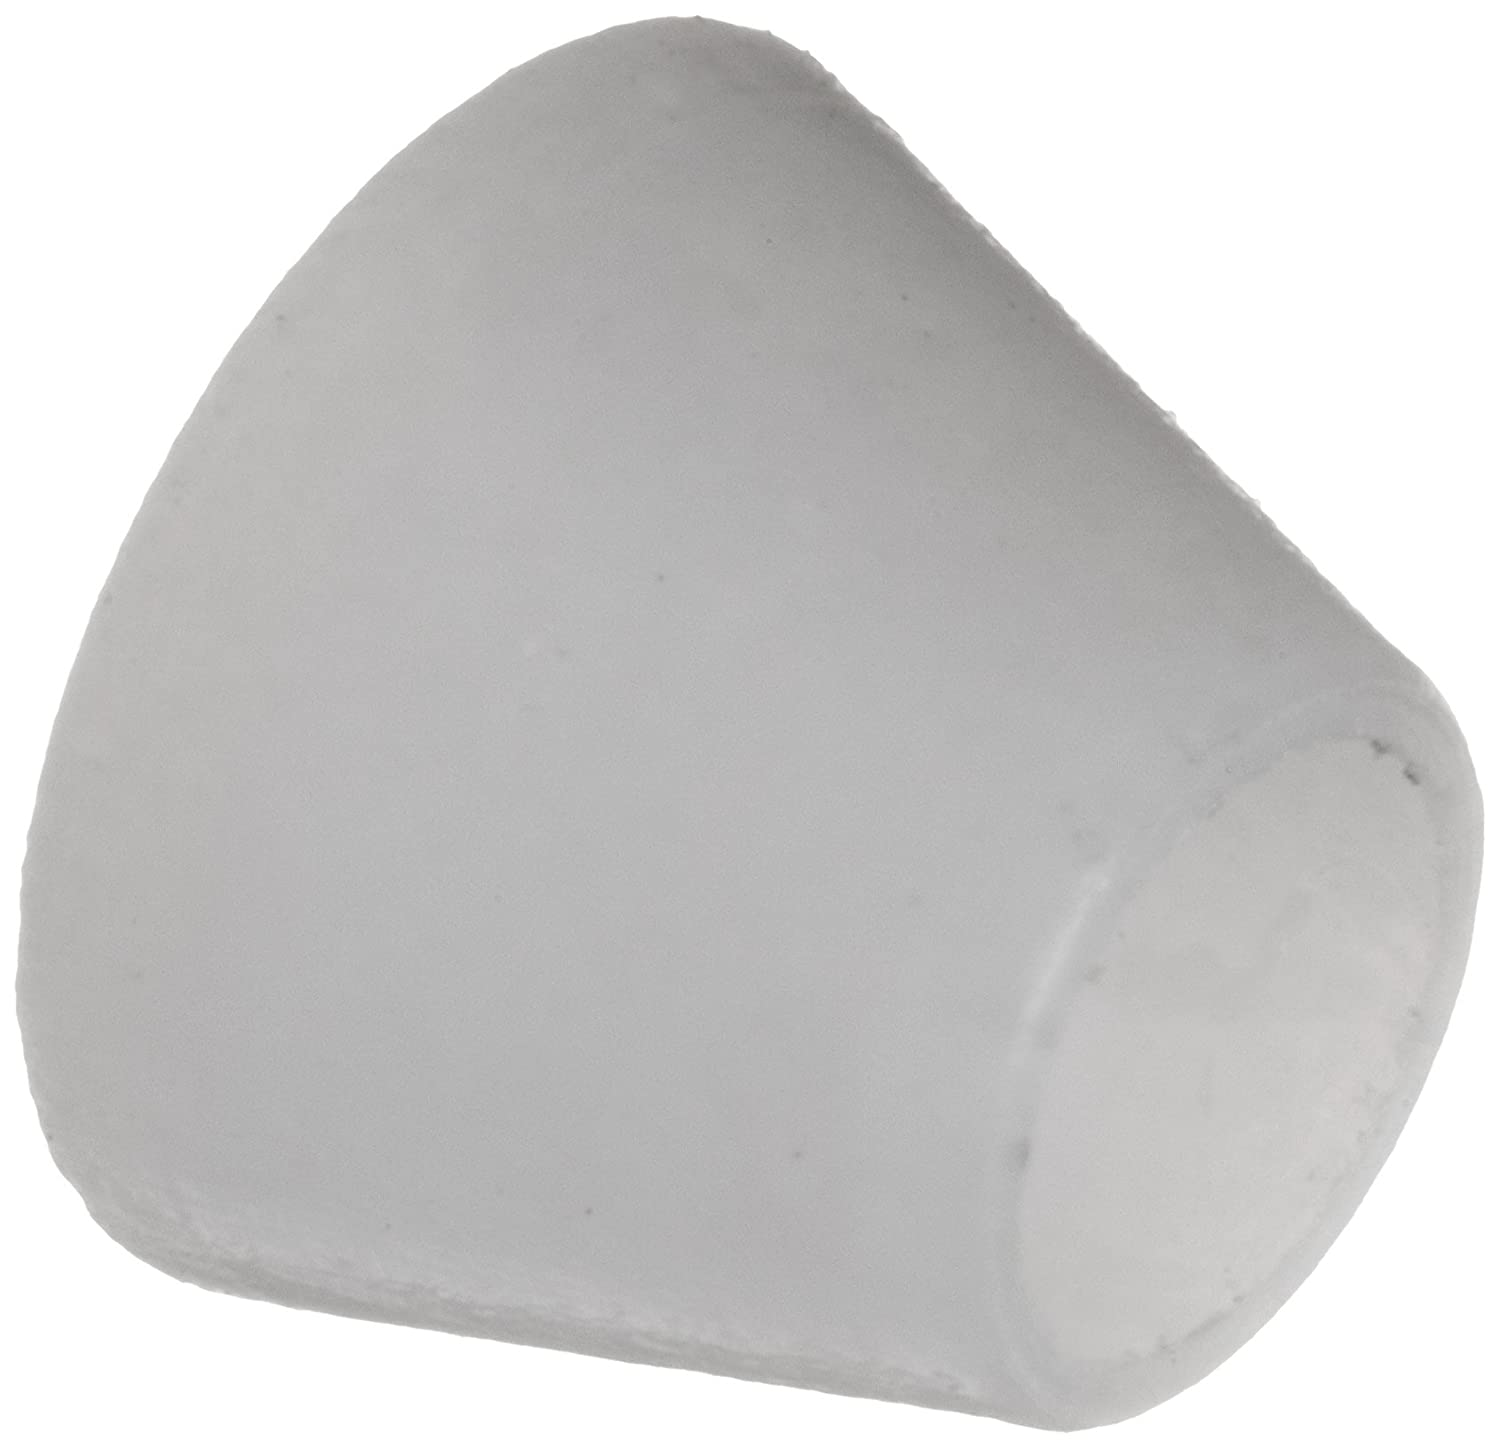 Parker Instrumentation Tube Fitting Accessory Front Ferrule for use with Inch Tubing